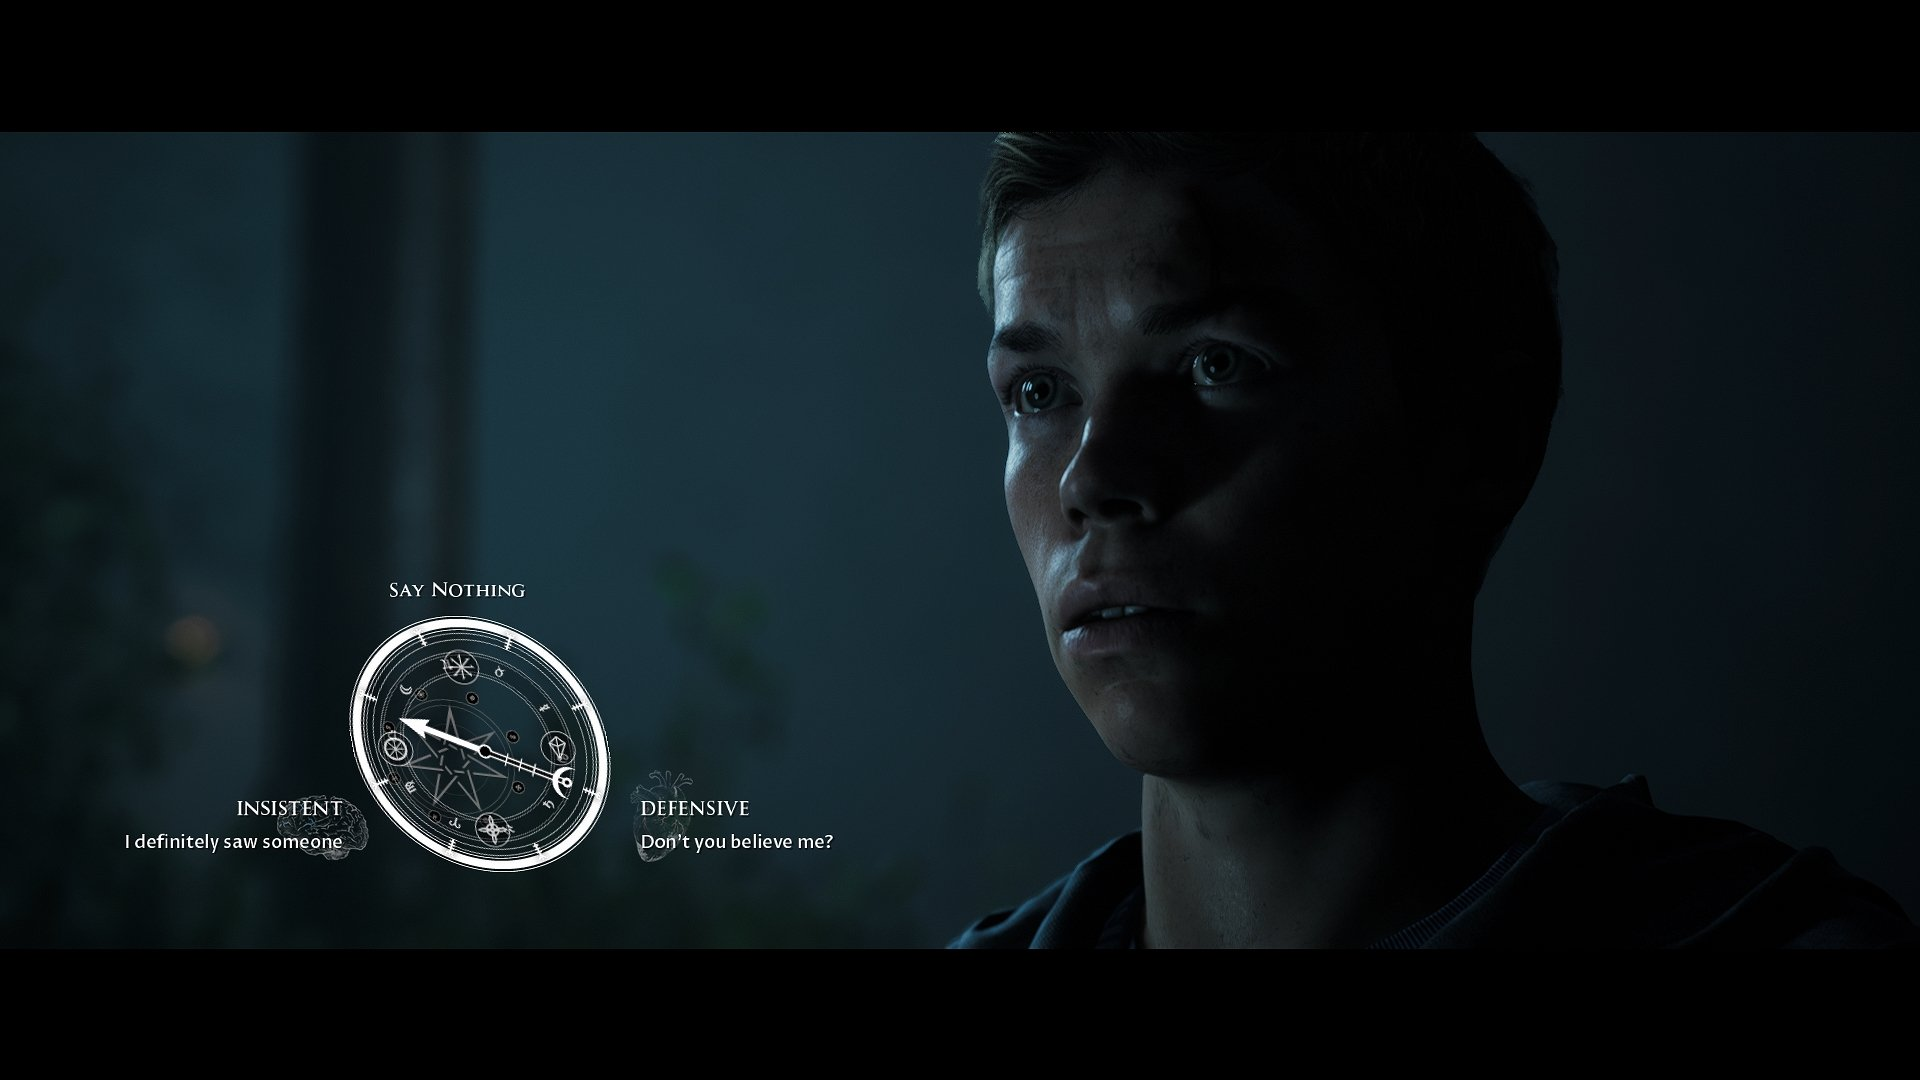 Dark Pictures Little Hope Dialogue Choices